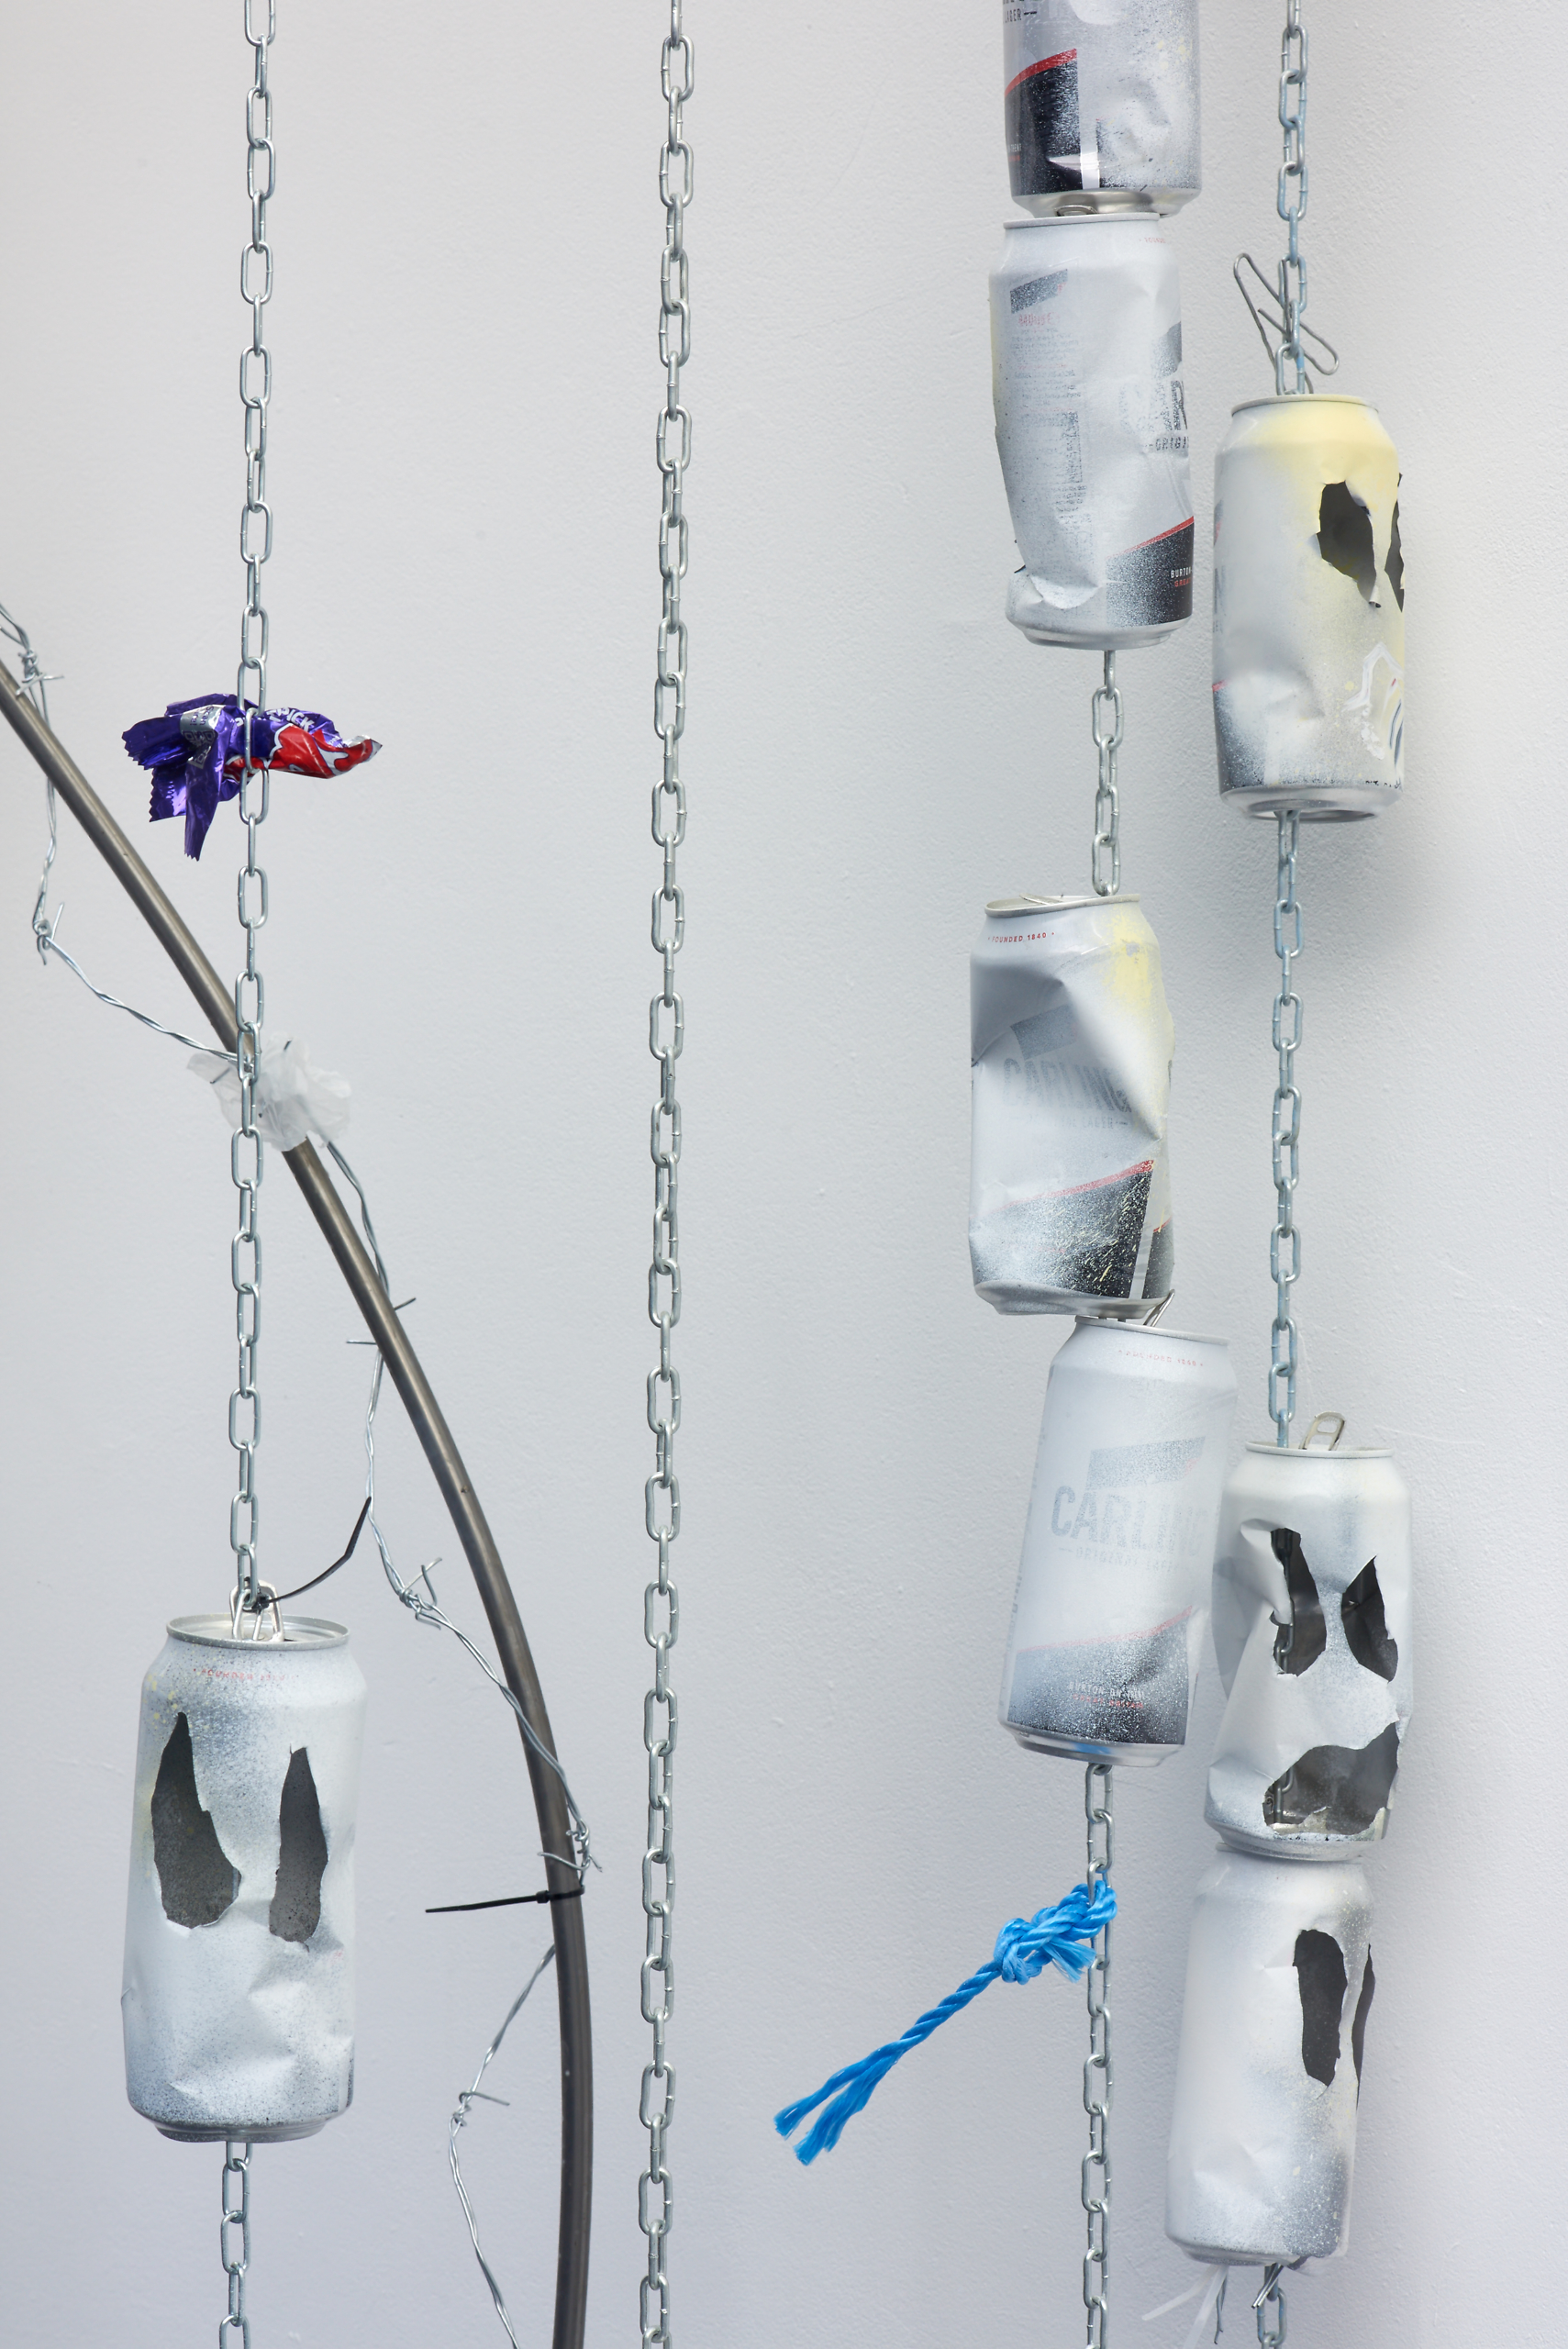 Sam Blackwood, Nothing to lose (after Philip Muspratt), 2018. Lager cans, spray paint, chain, found materials. VITRINE, London. Photographer : Jonathan Bassett.